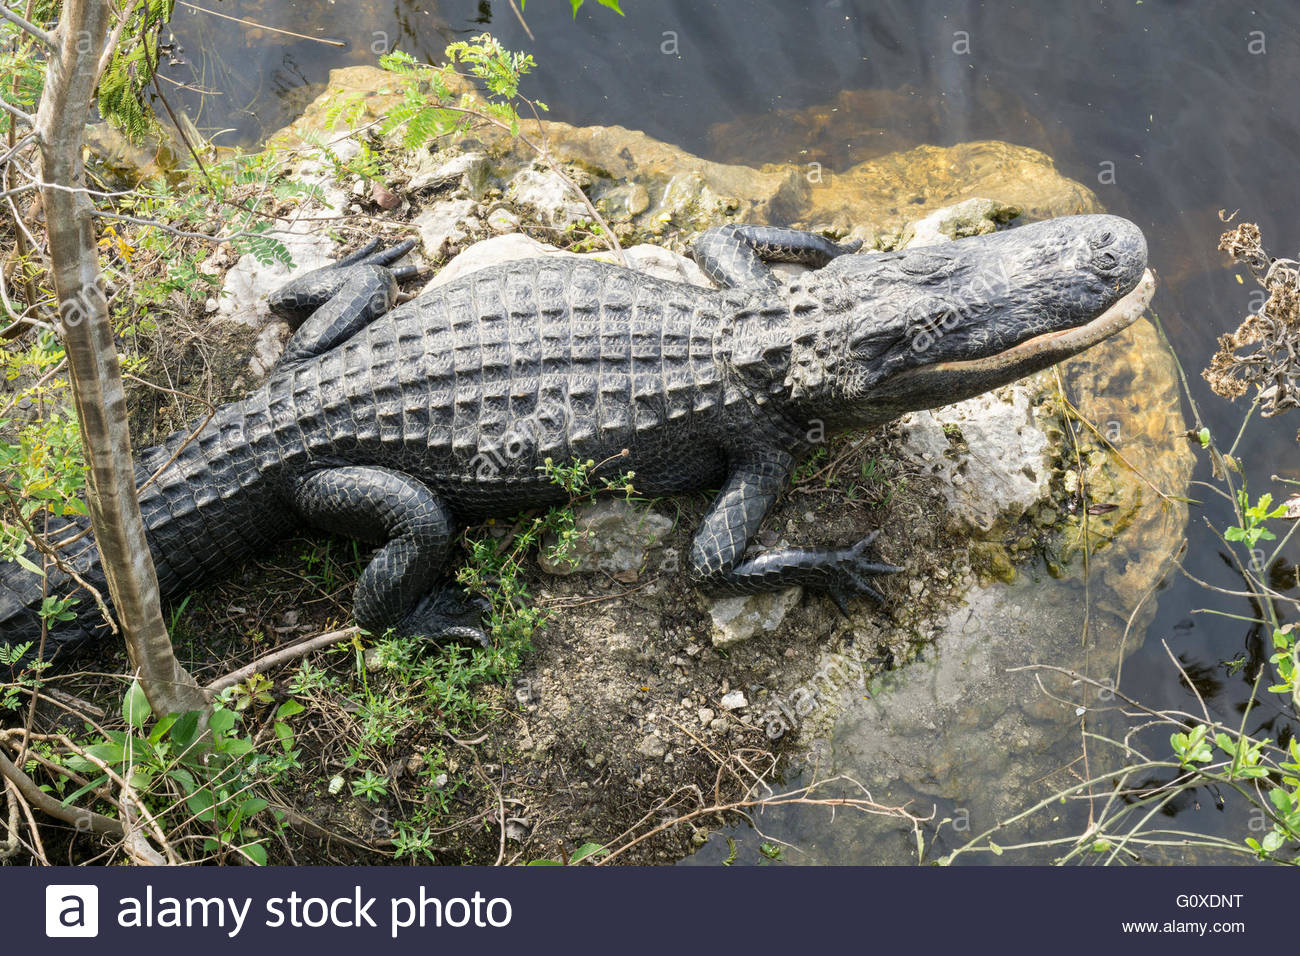 An alligator perches on a rock at the Oasis Visitors Center in Big Cypress National Preserve in the Everglades in - Stock Image